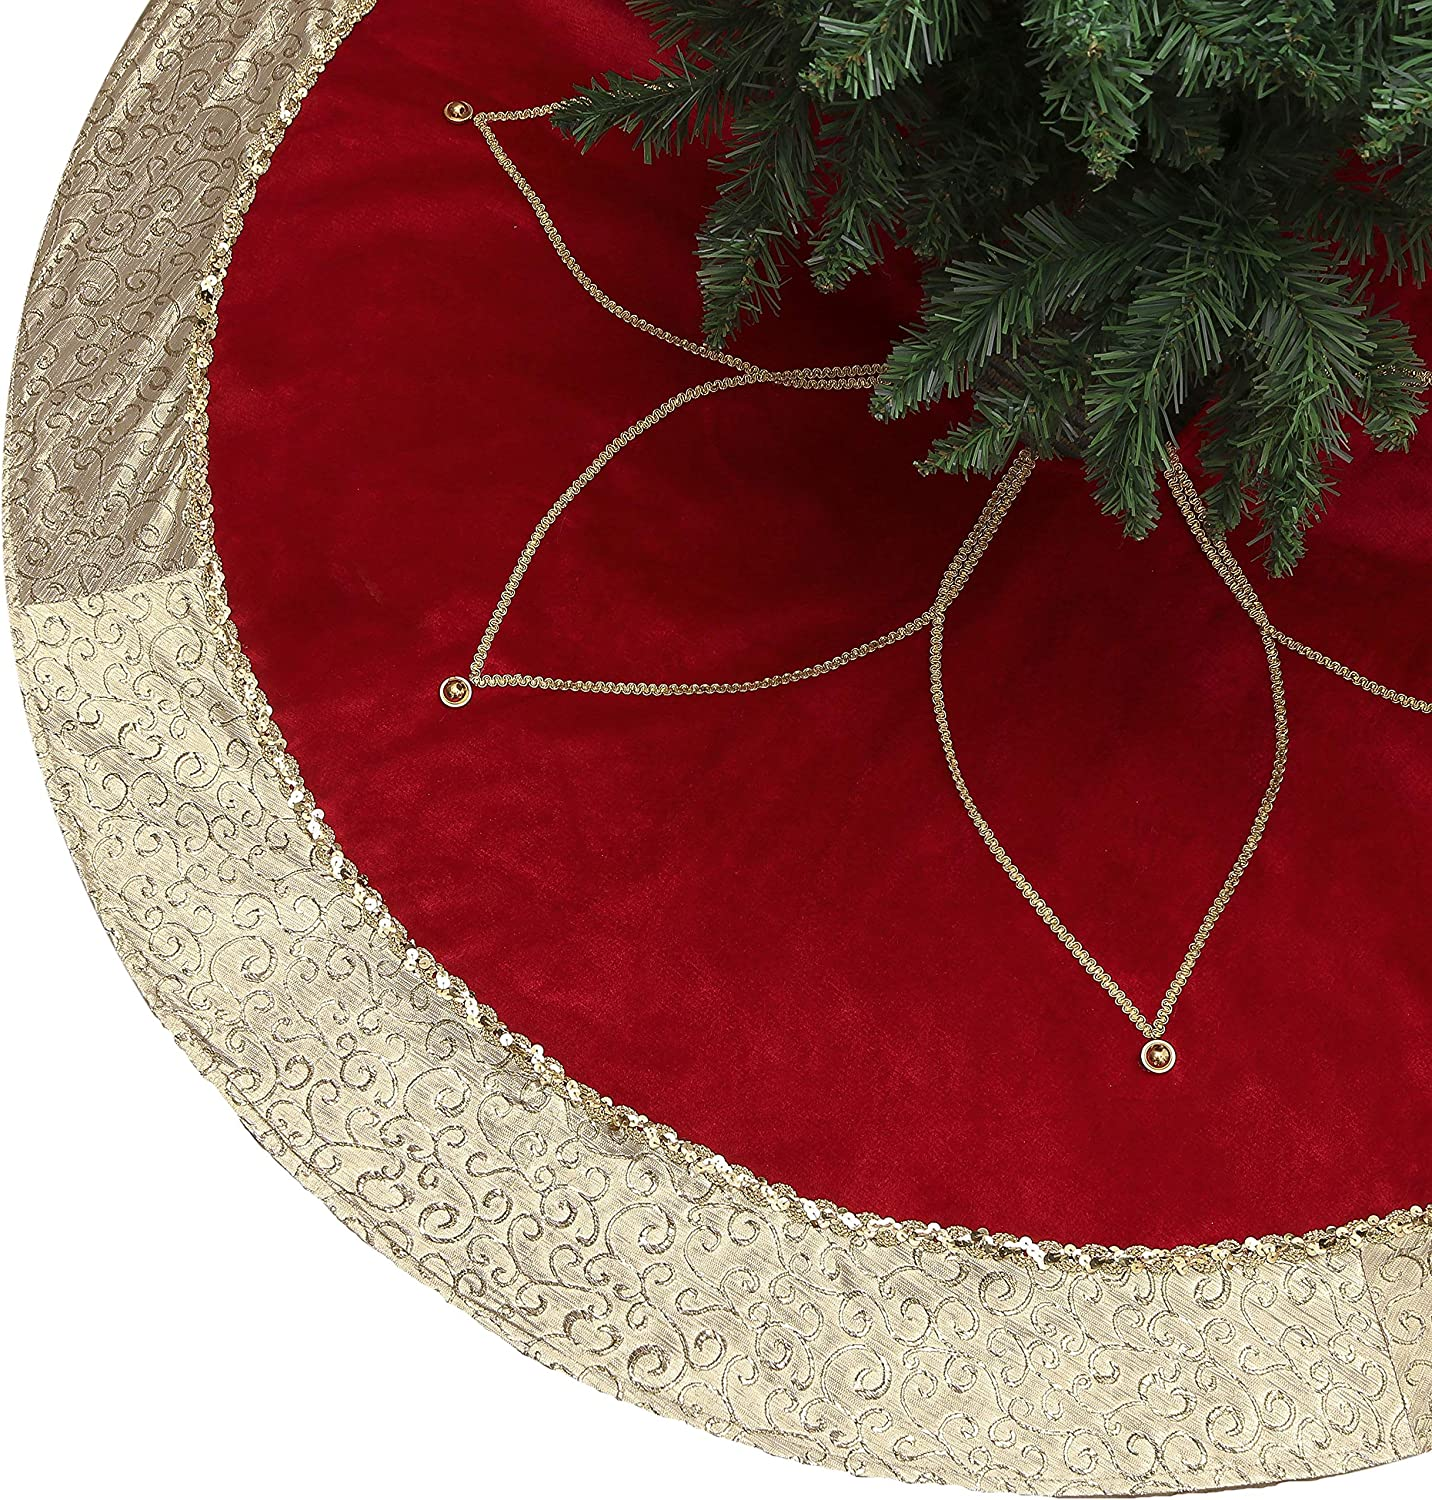 Valery Madelyn 48 inch Luxury Red Gold Christmas Tree Skirt Decorations with Flower Design, Themed with Christmas Tree Decor (Not Included)